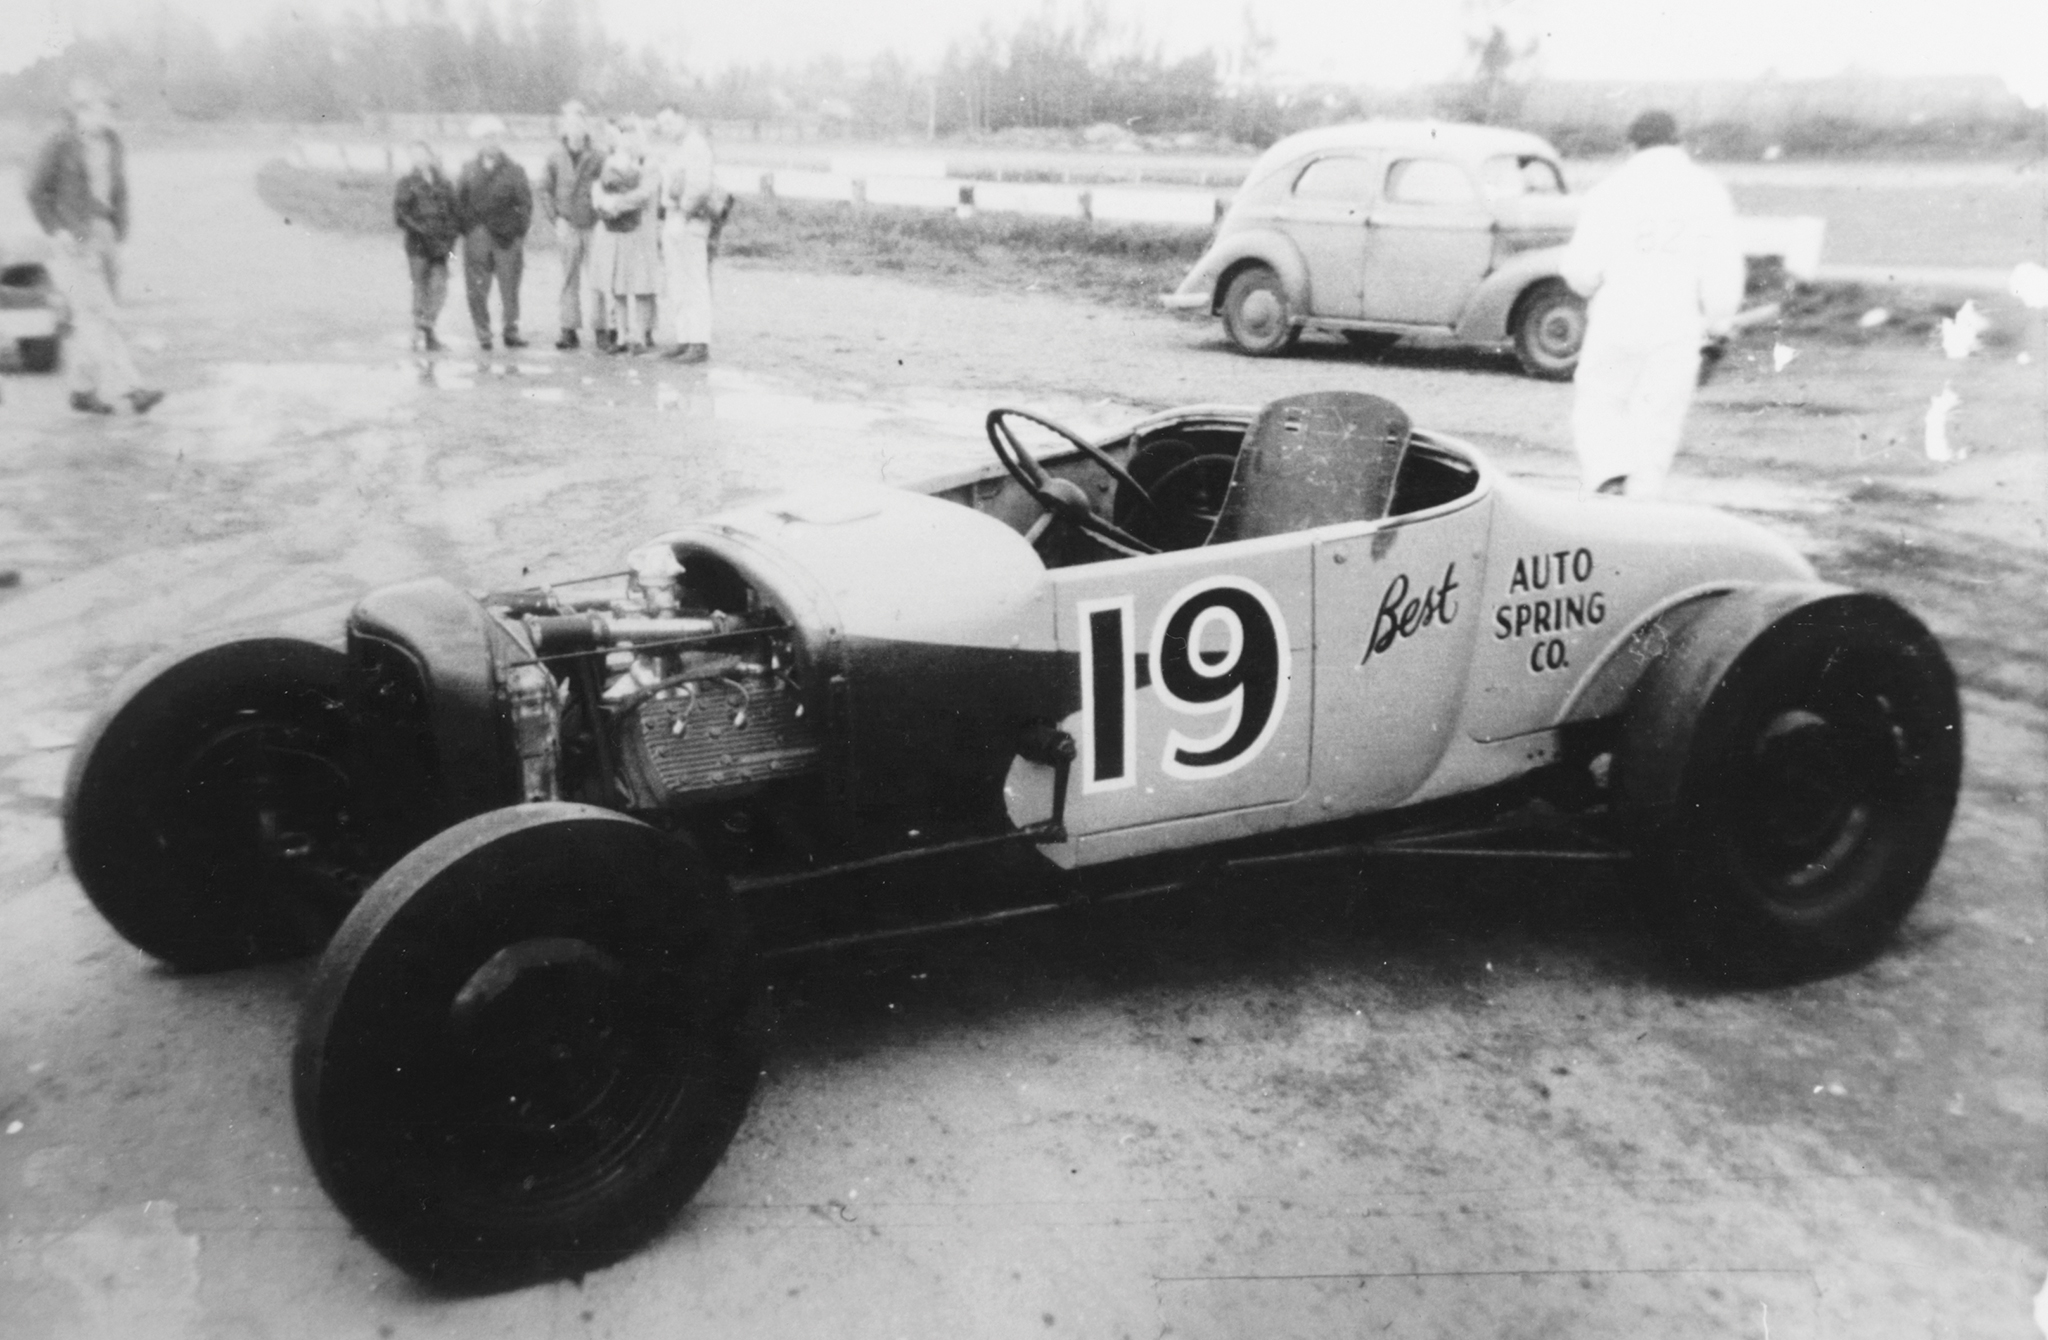 Dick Clevenger's '27 T was a front-running car in the Pacific Northwest in 1948. When it came up for sale as a roller for $425, Jack snapped it up.